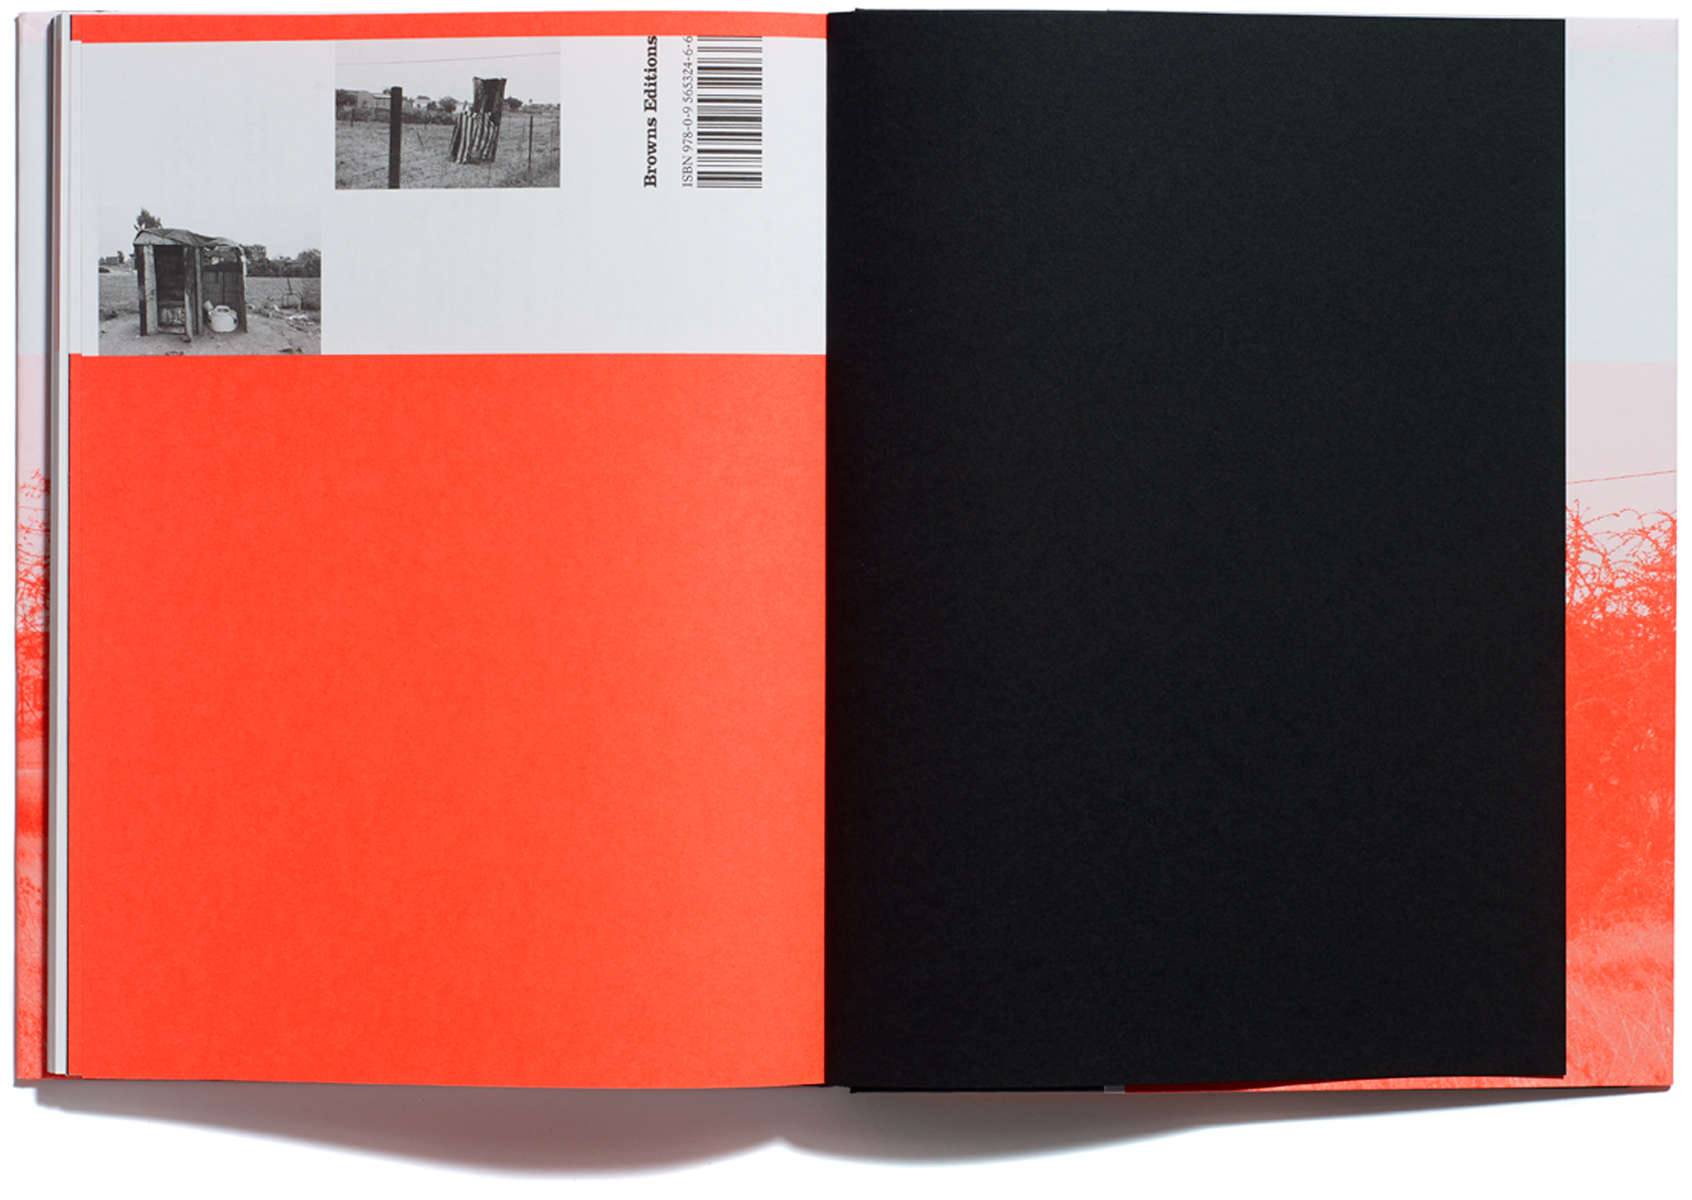 Browns Editions, Browns Editions Publishing, Browns Editions Books, Browns Editions John Ross, Browns Editions The Lonely Road, Browns Editions John Ross The Lonely Road